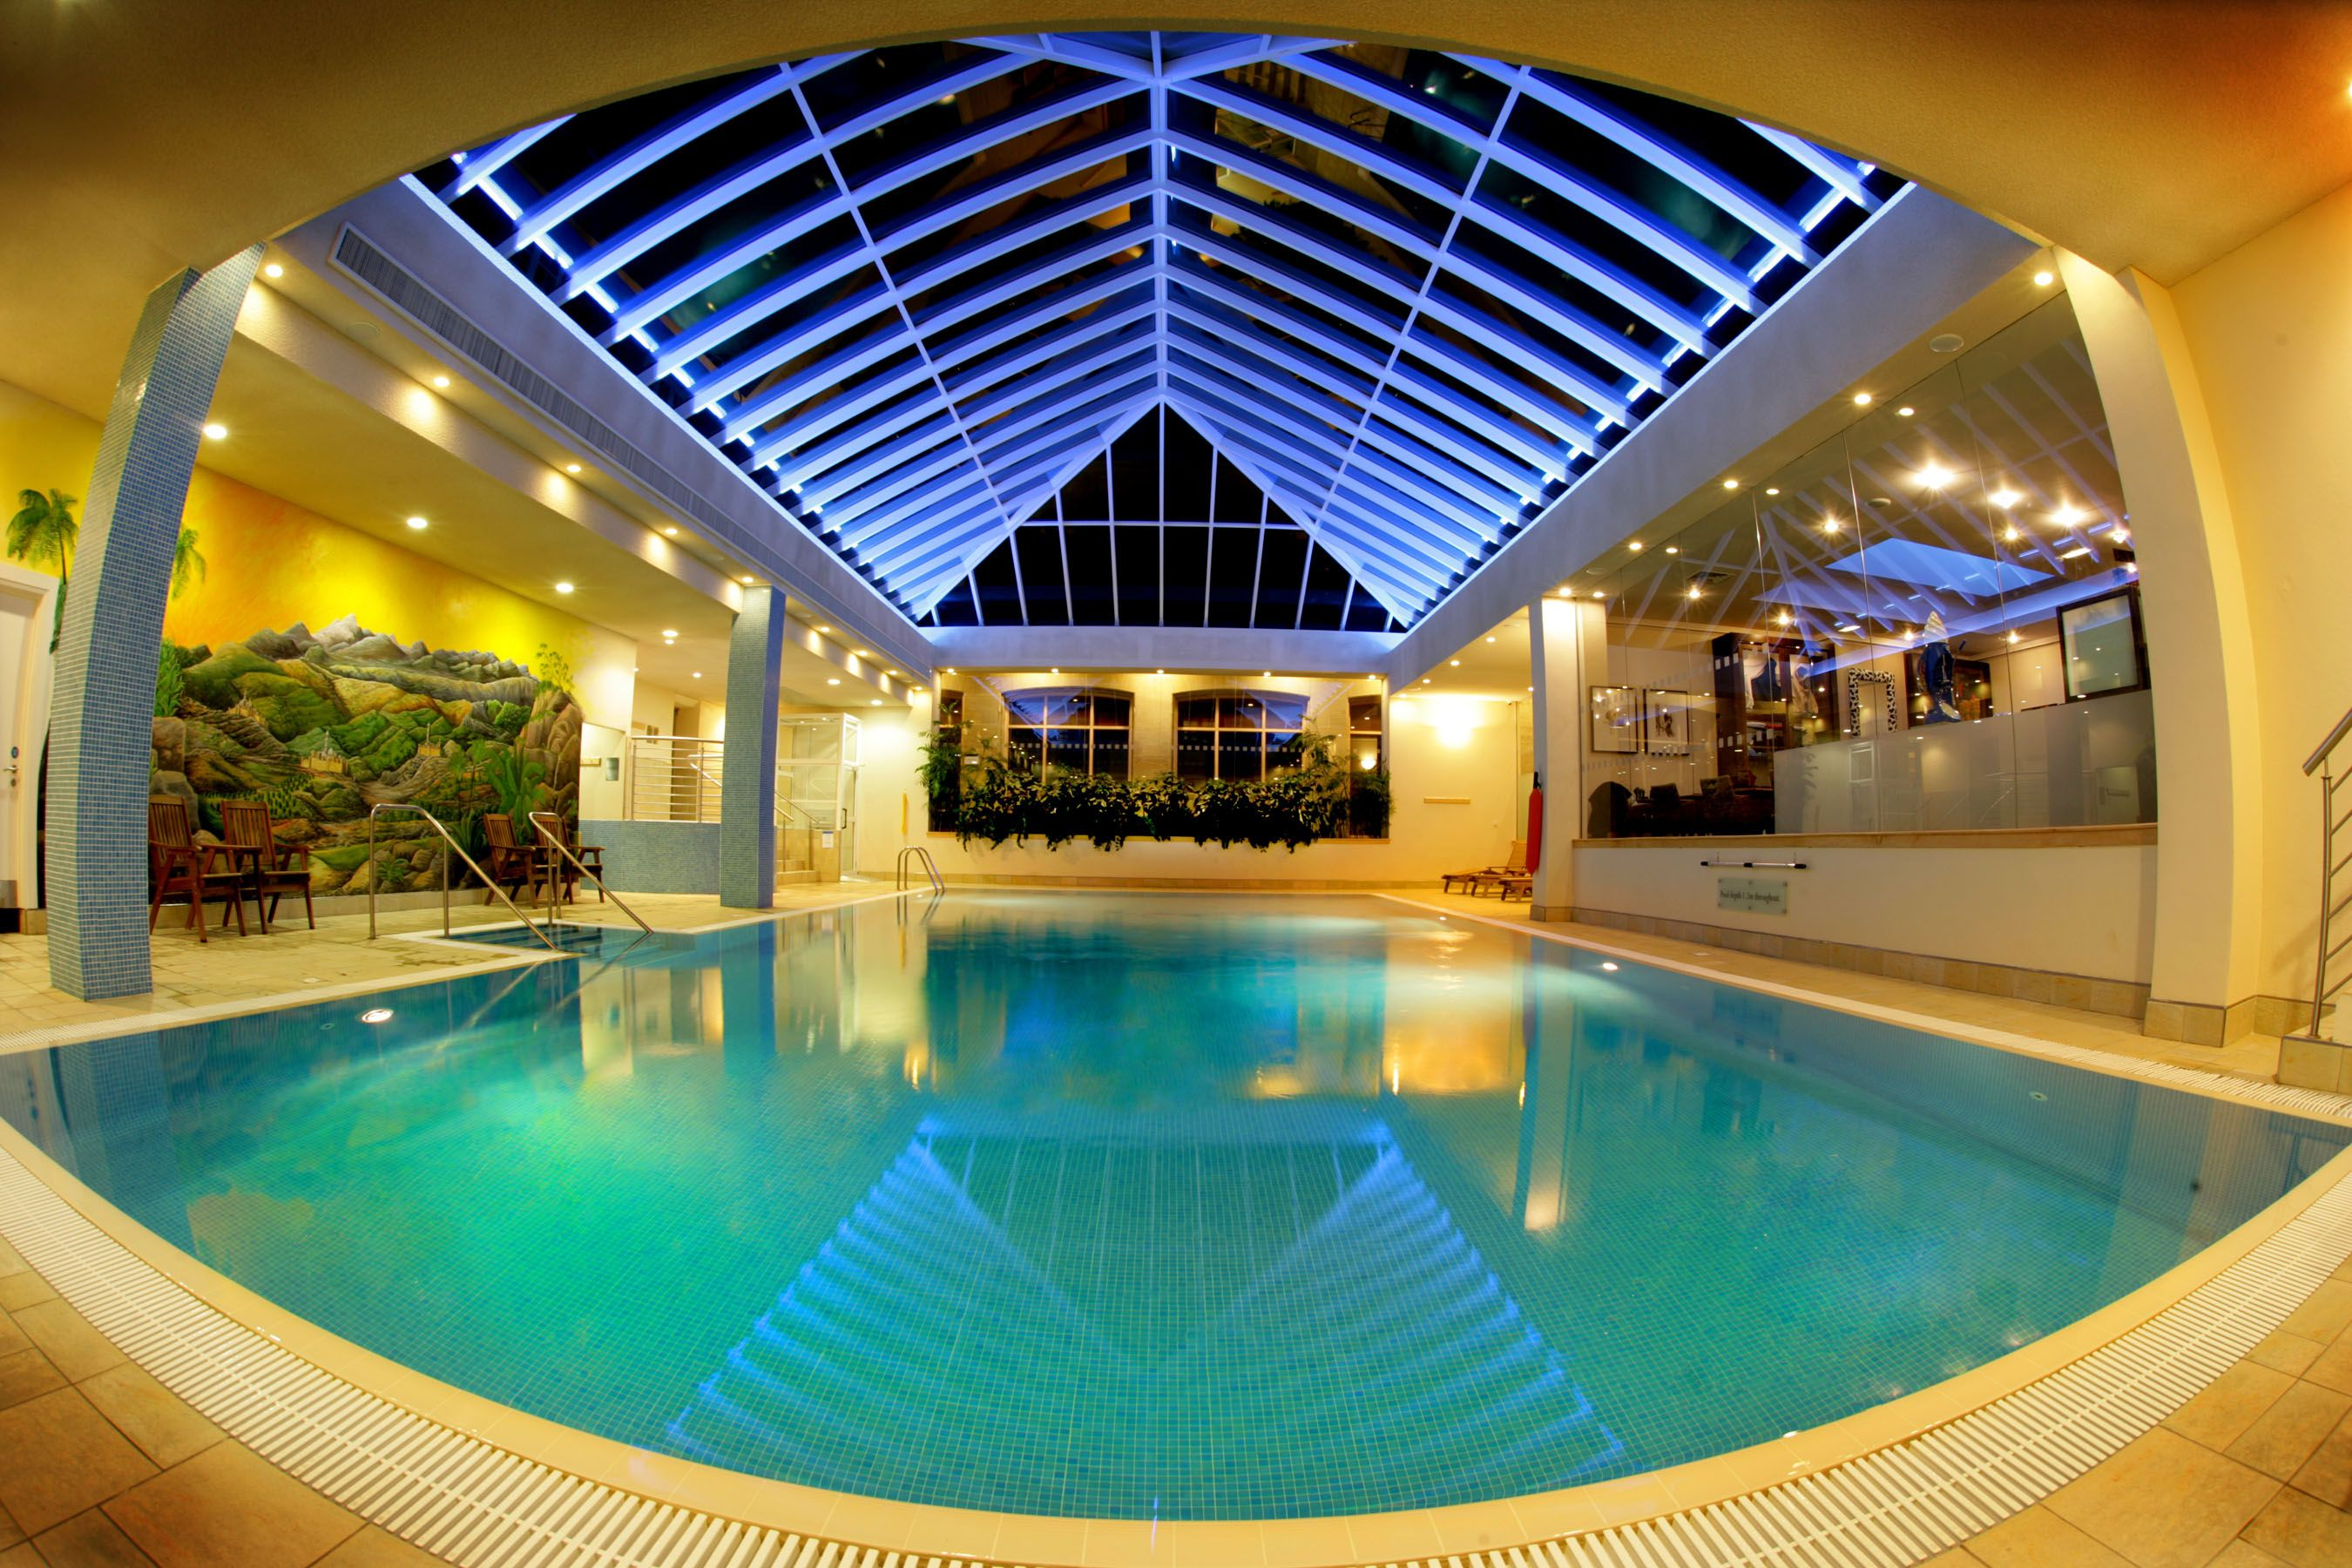 Swimming pool indoor  Top 25 Ideas to Complete your Home with Indoor Swimming Pool ...